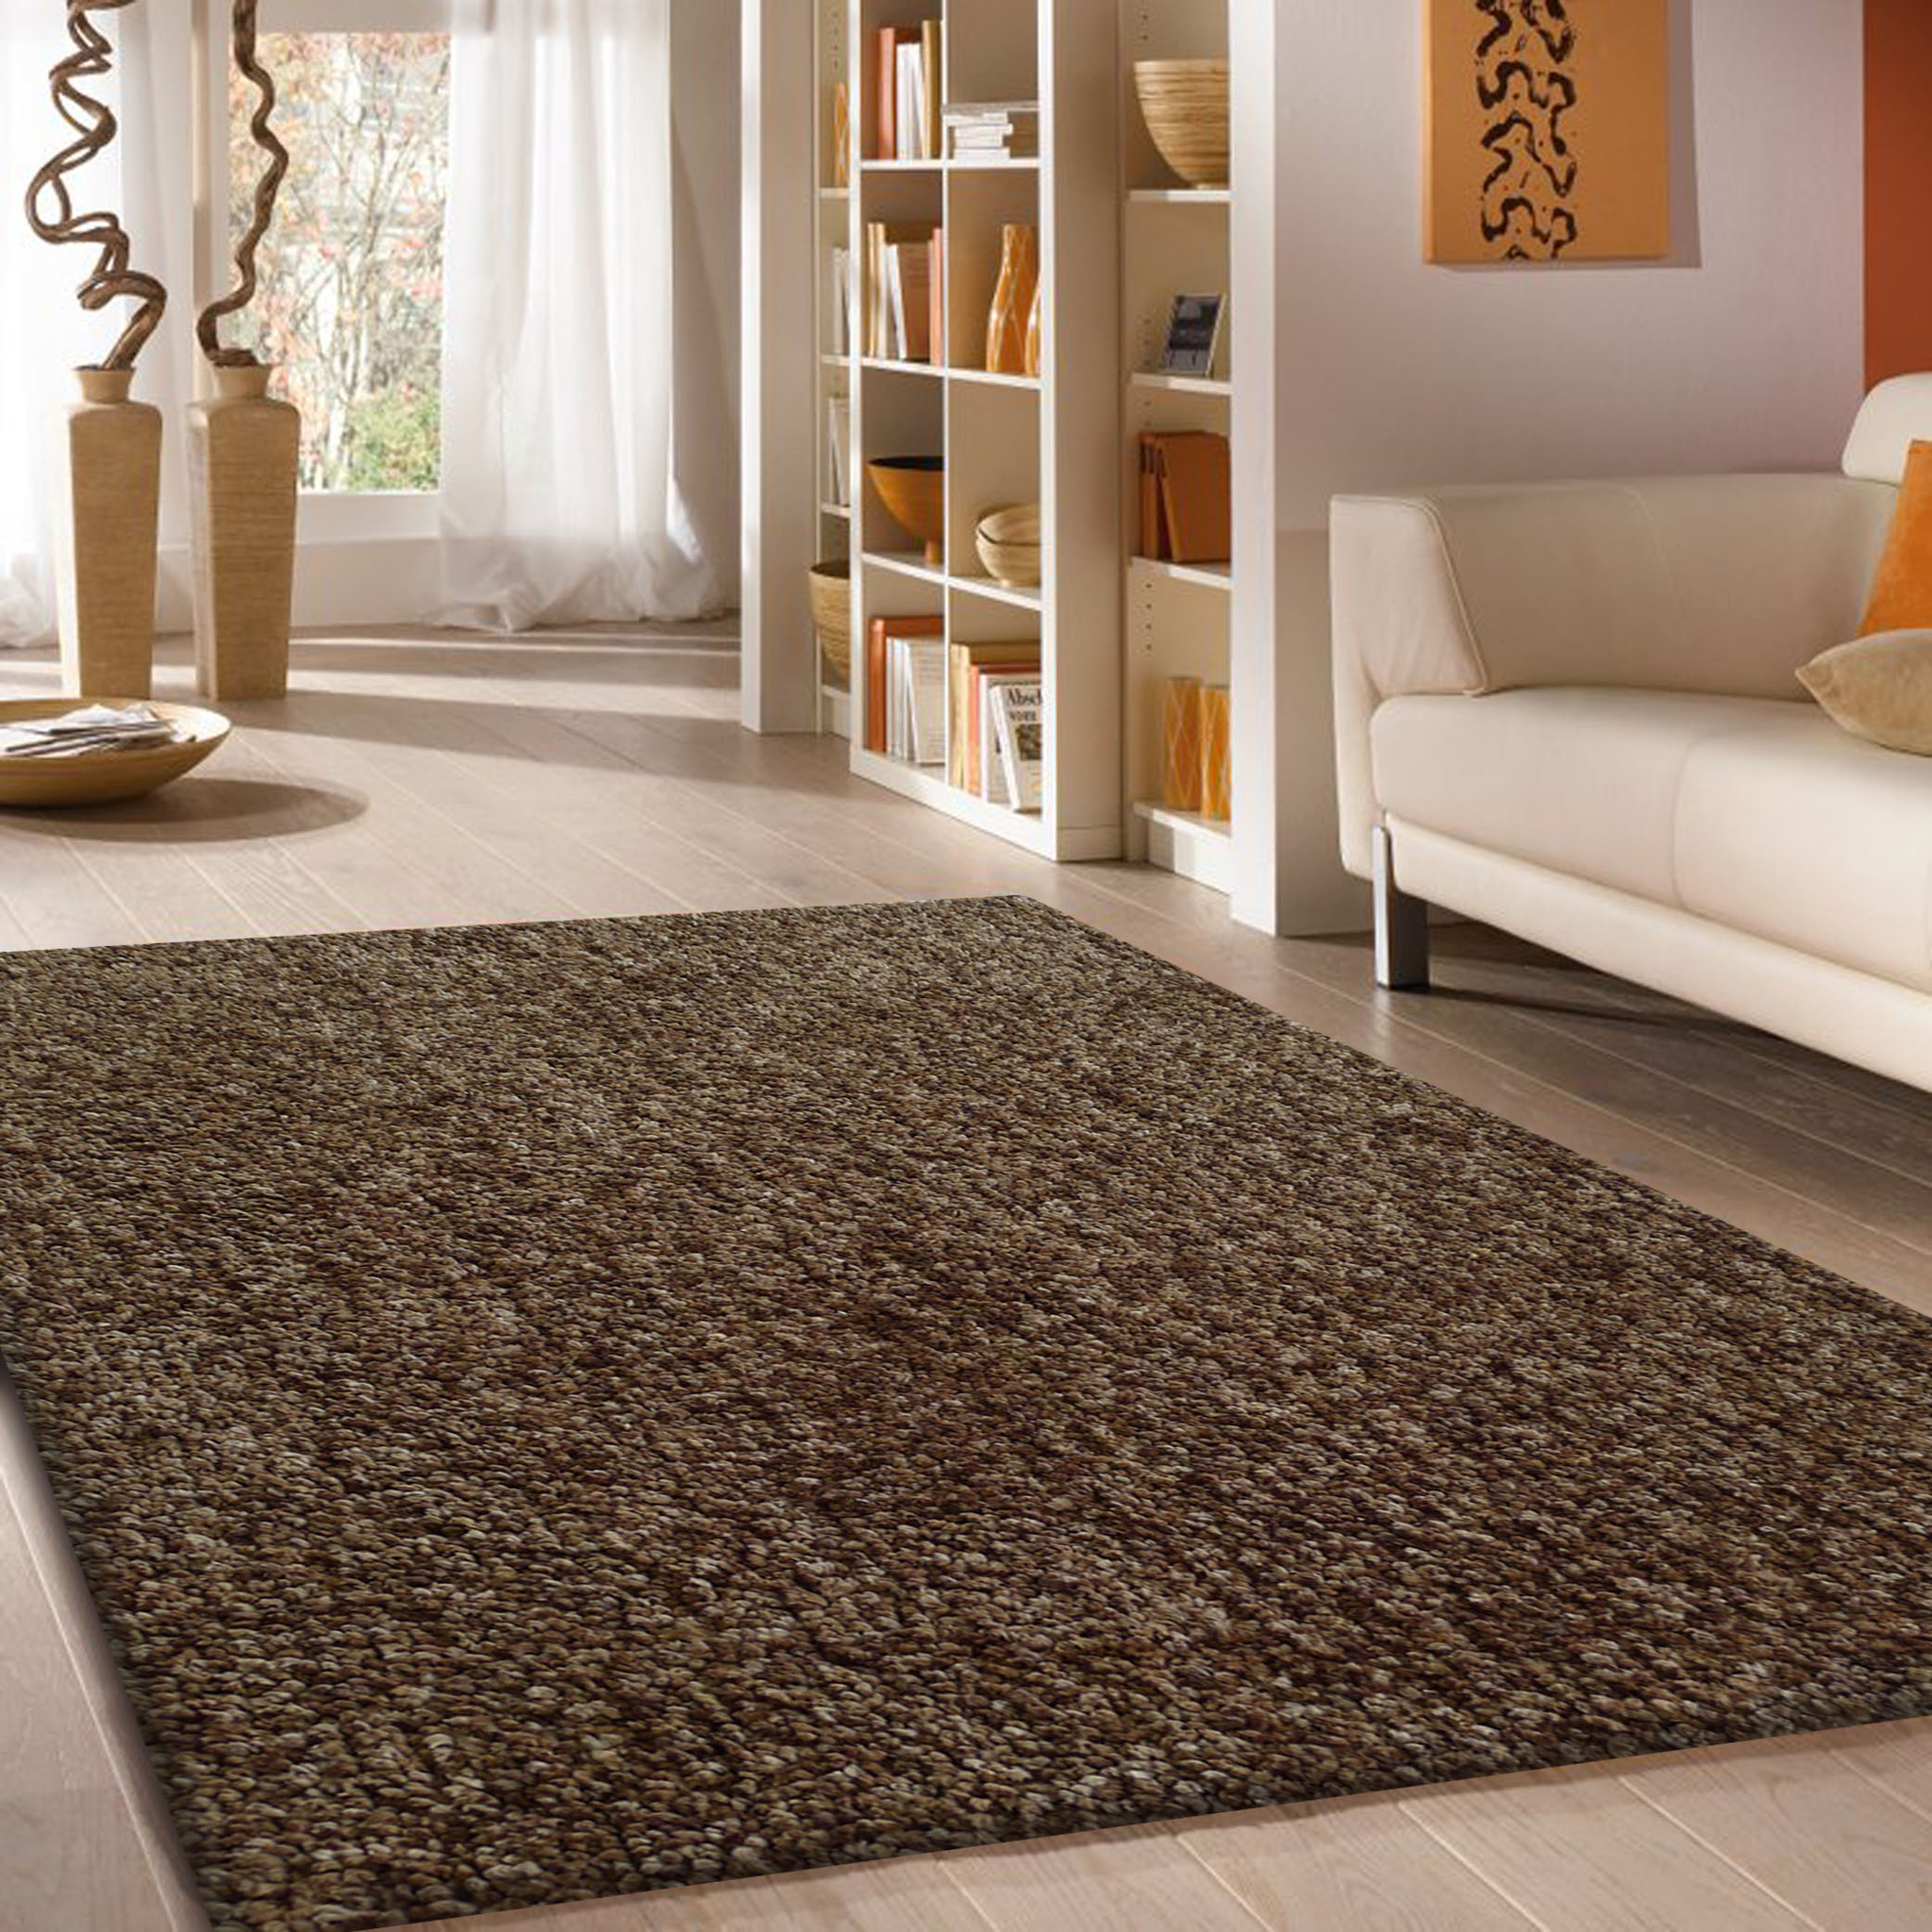 soft thick rugs dazzling plush carpet astounding rug area super design shag stylist large